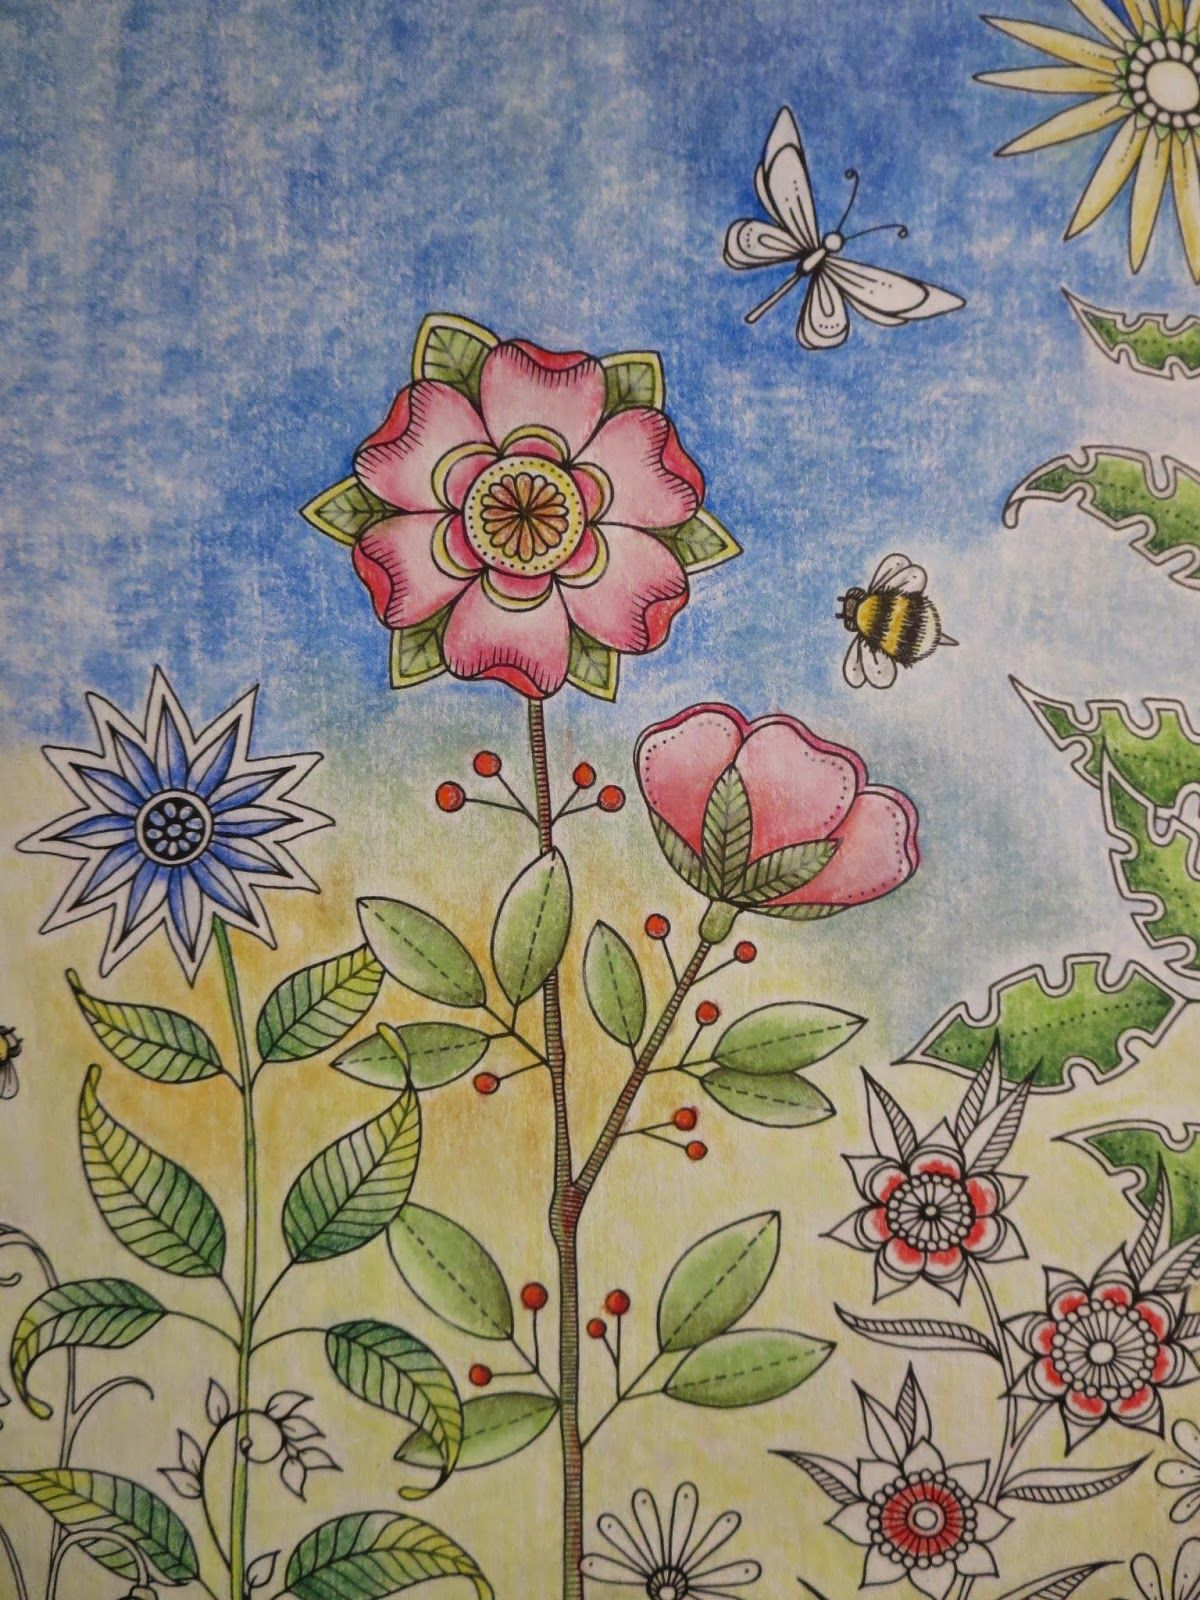 Secret garden coloring book website - Passion For Pencils My Secret Garden Colouring Book Part 6 Testing Different Brands And